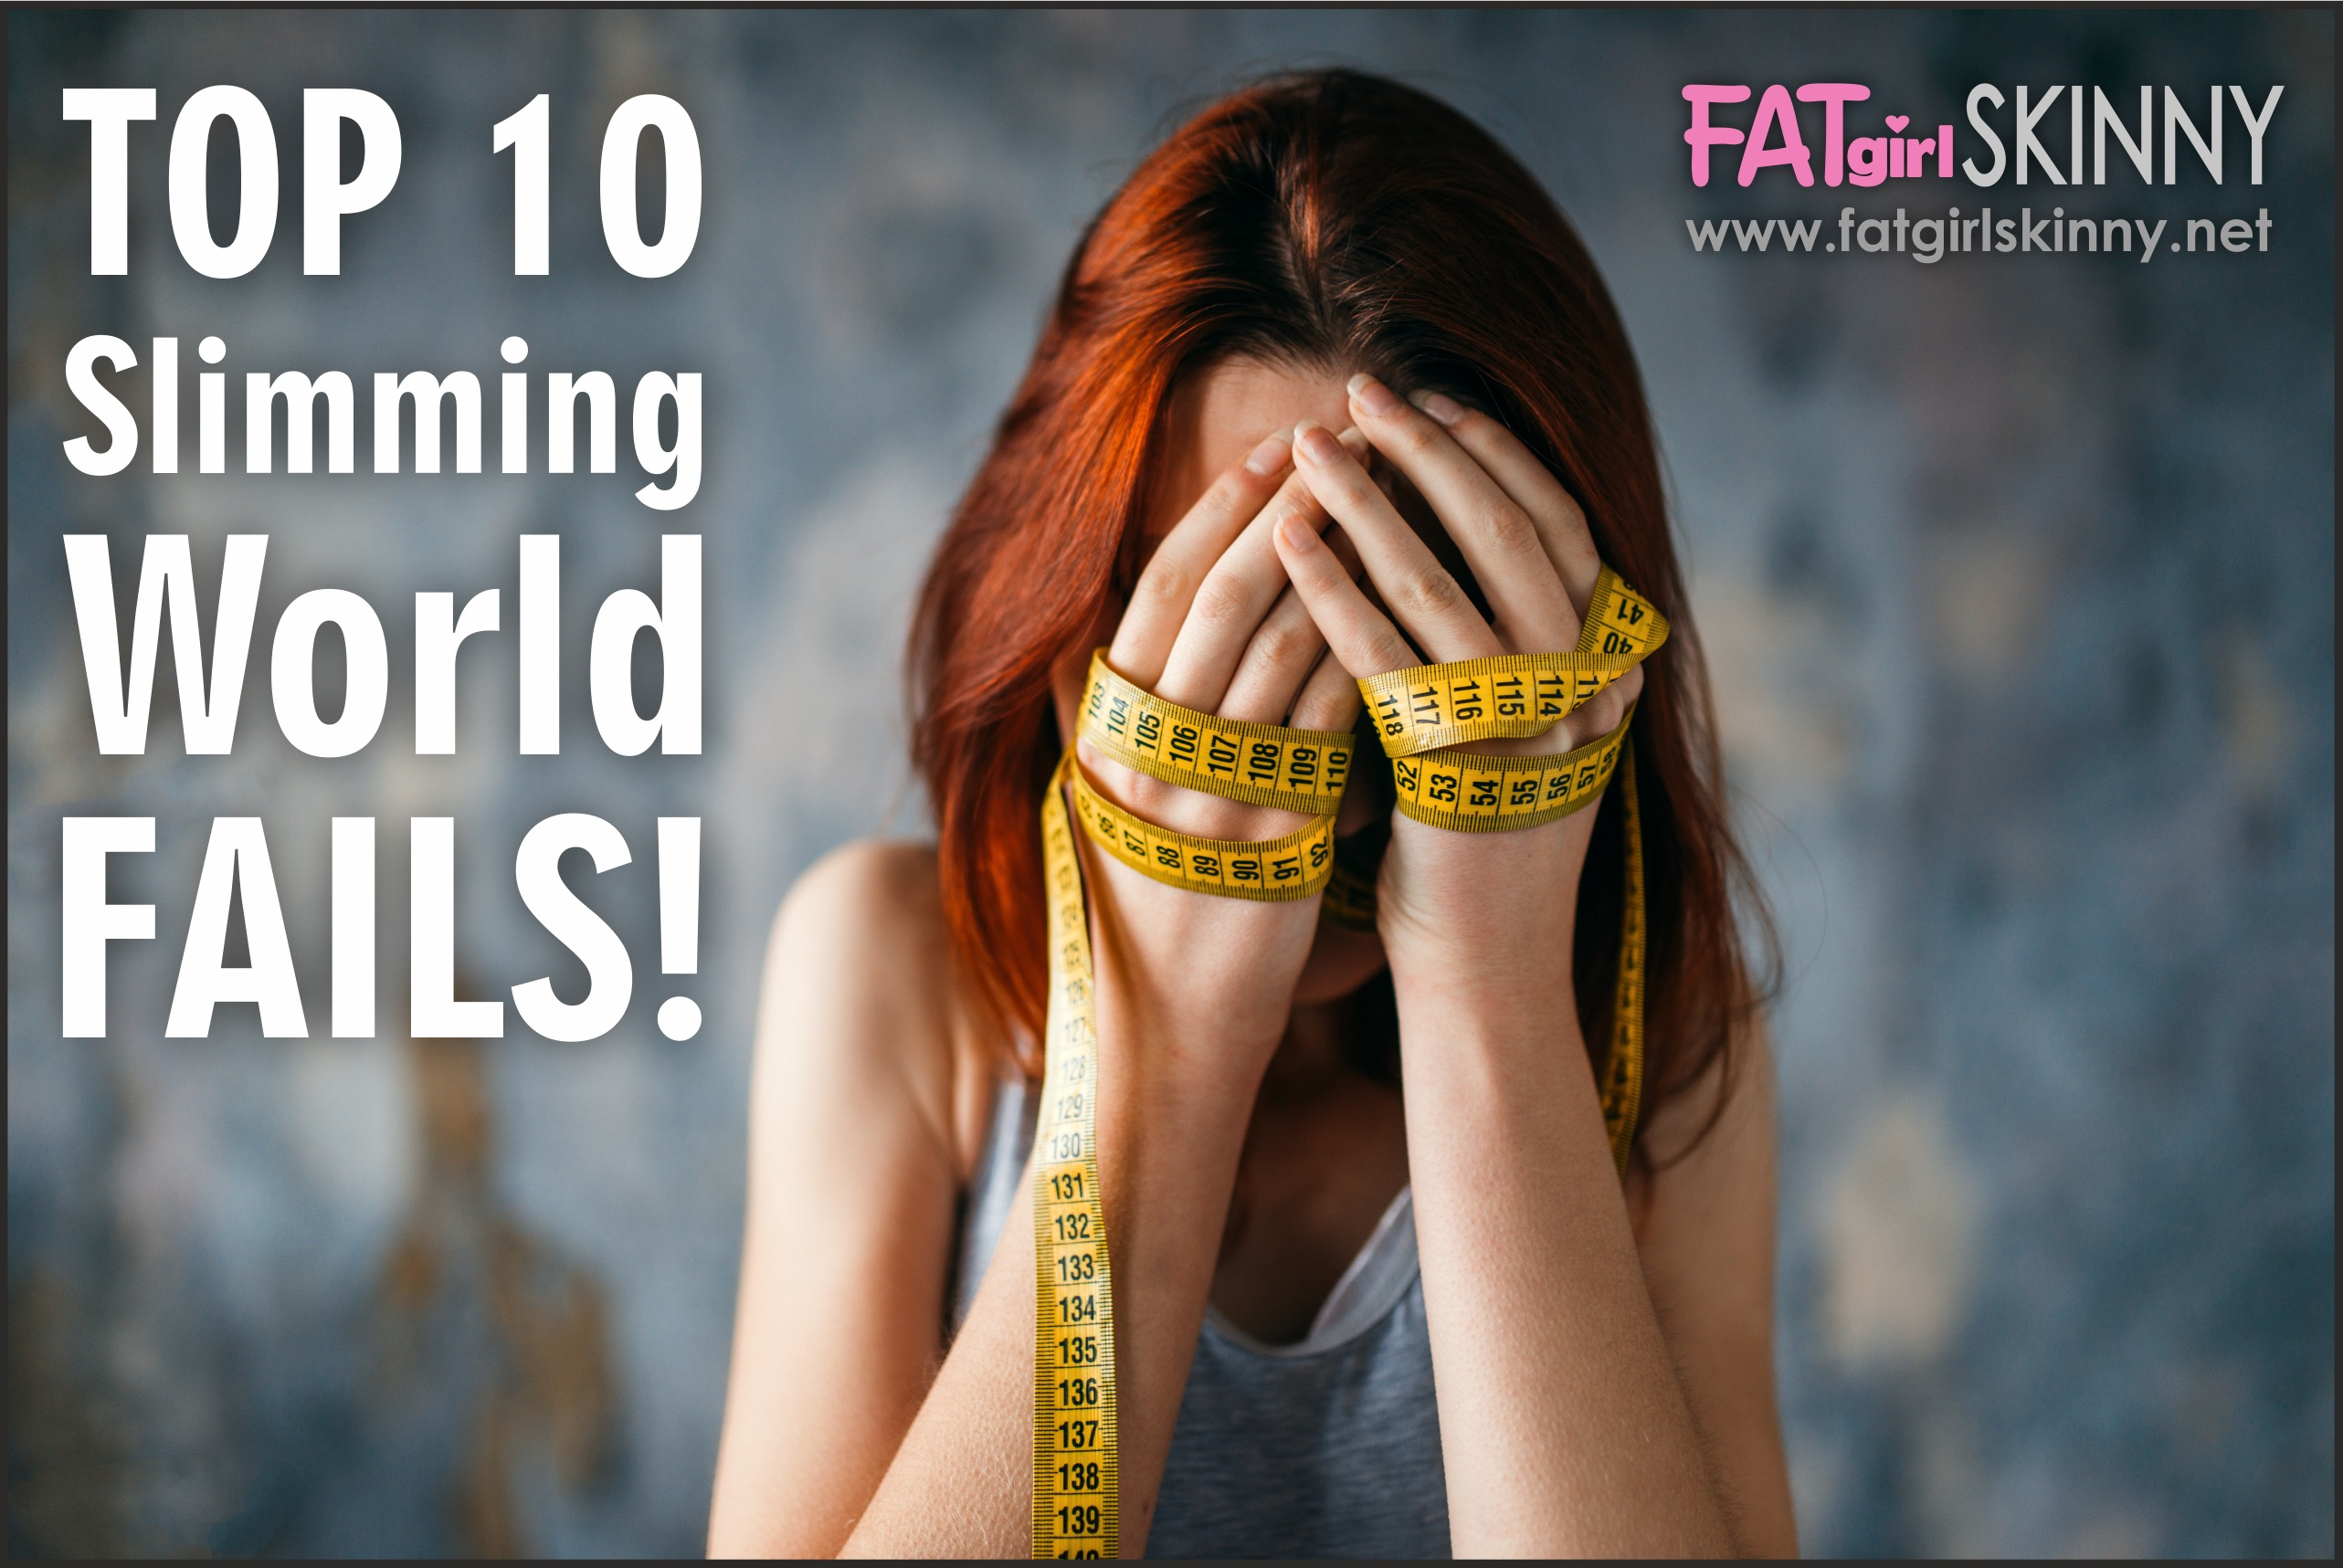 Slimming World Fails Reasons You May Not Be Losing Fatgirlskinny Net Slimming World Recipes More What are another words for desperate? slimming world fails reasons you may